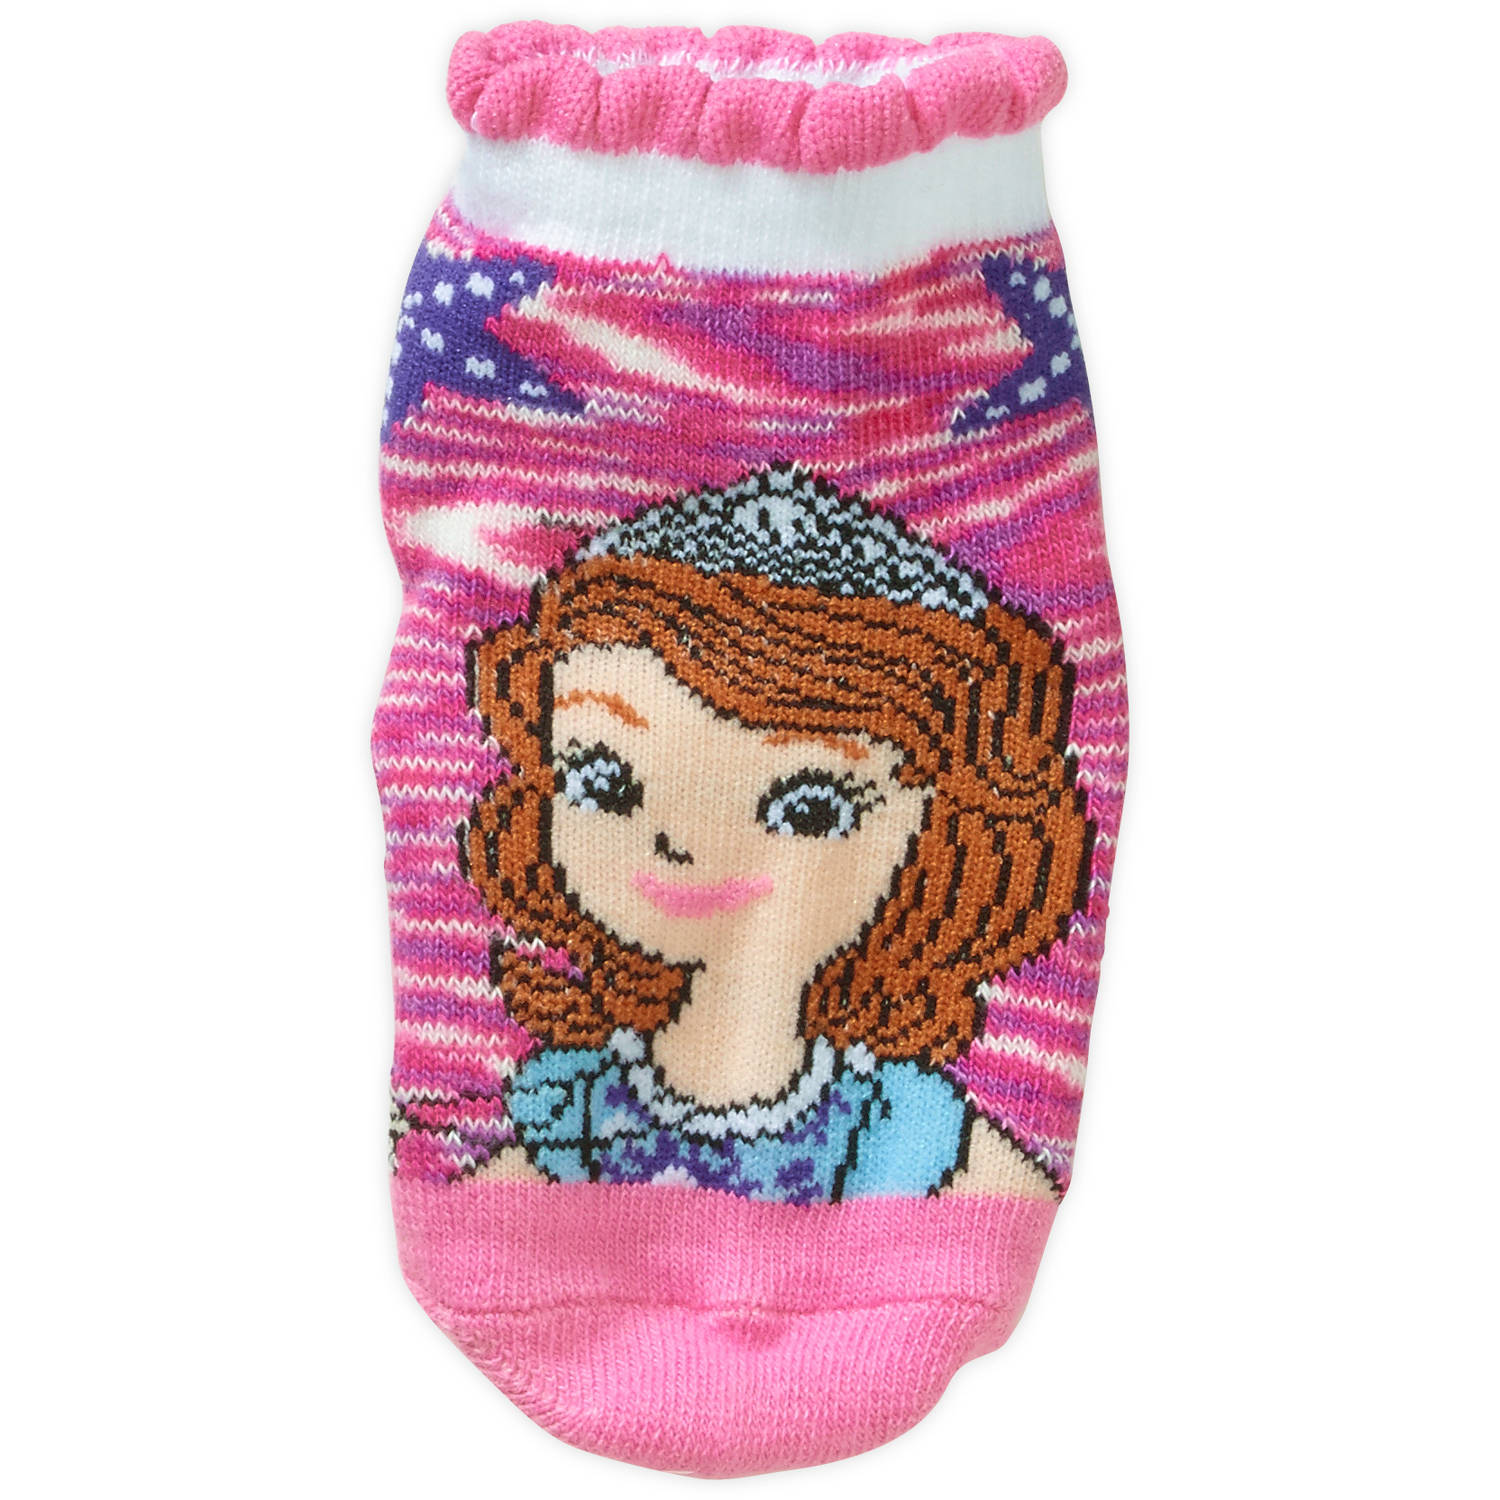 Sofia The First Princess Toddler Girl Quarter Socks, 3-Pack